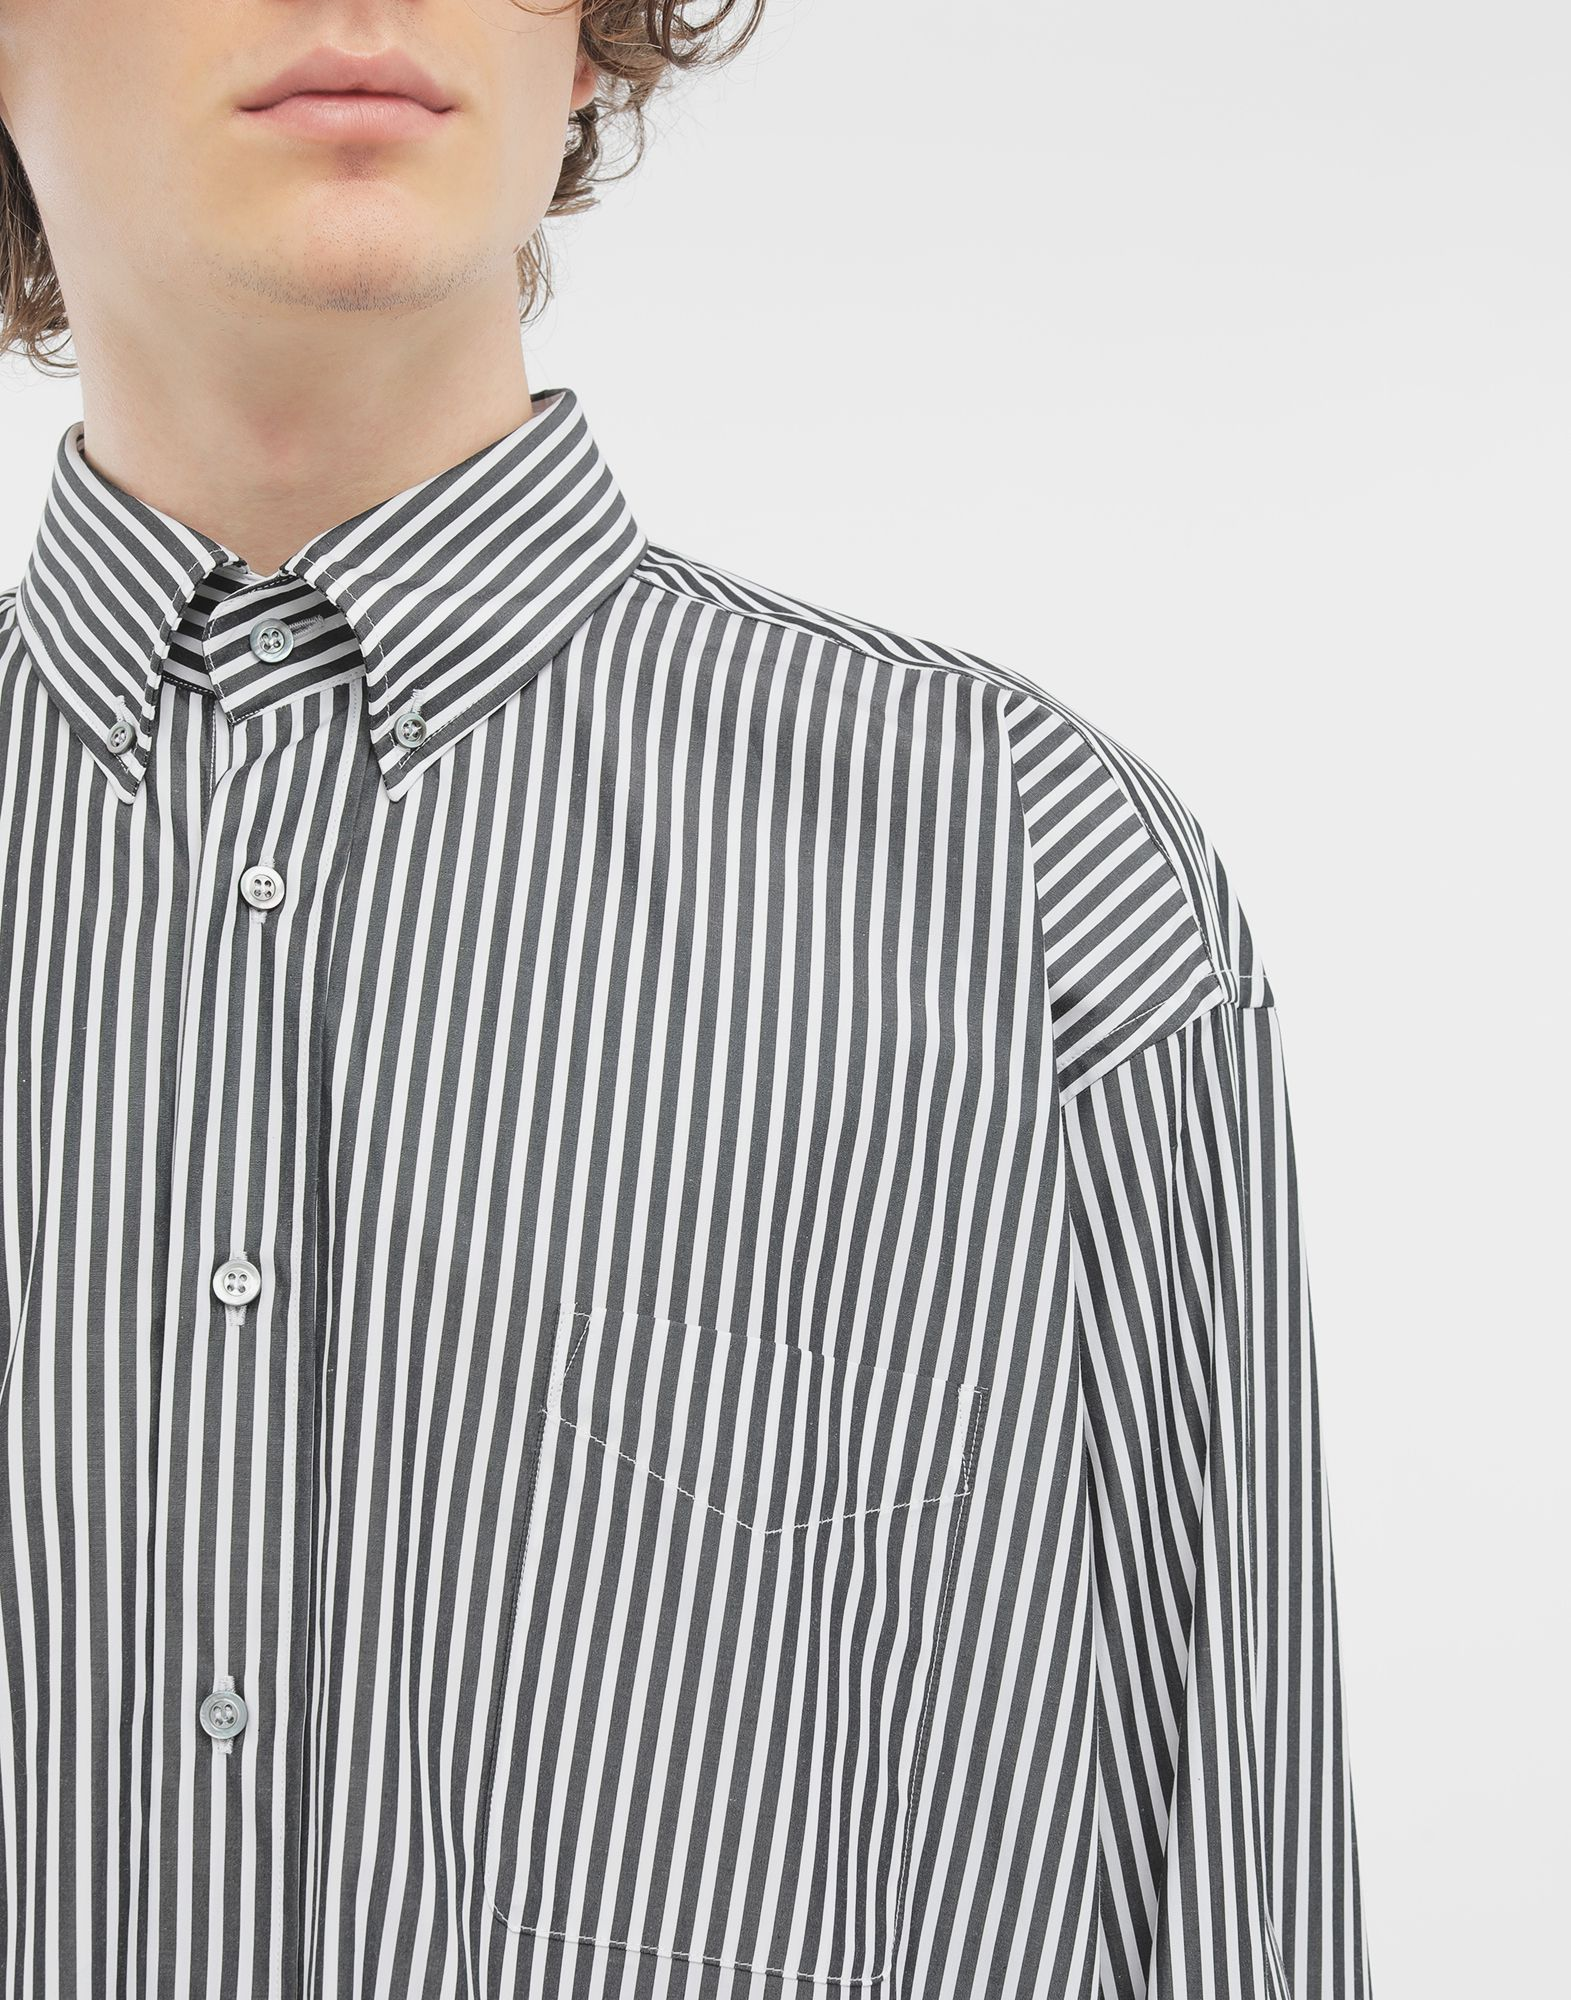 MAISON MARGIELA Striped shirt Long sleeve shirt Man a